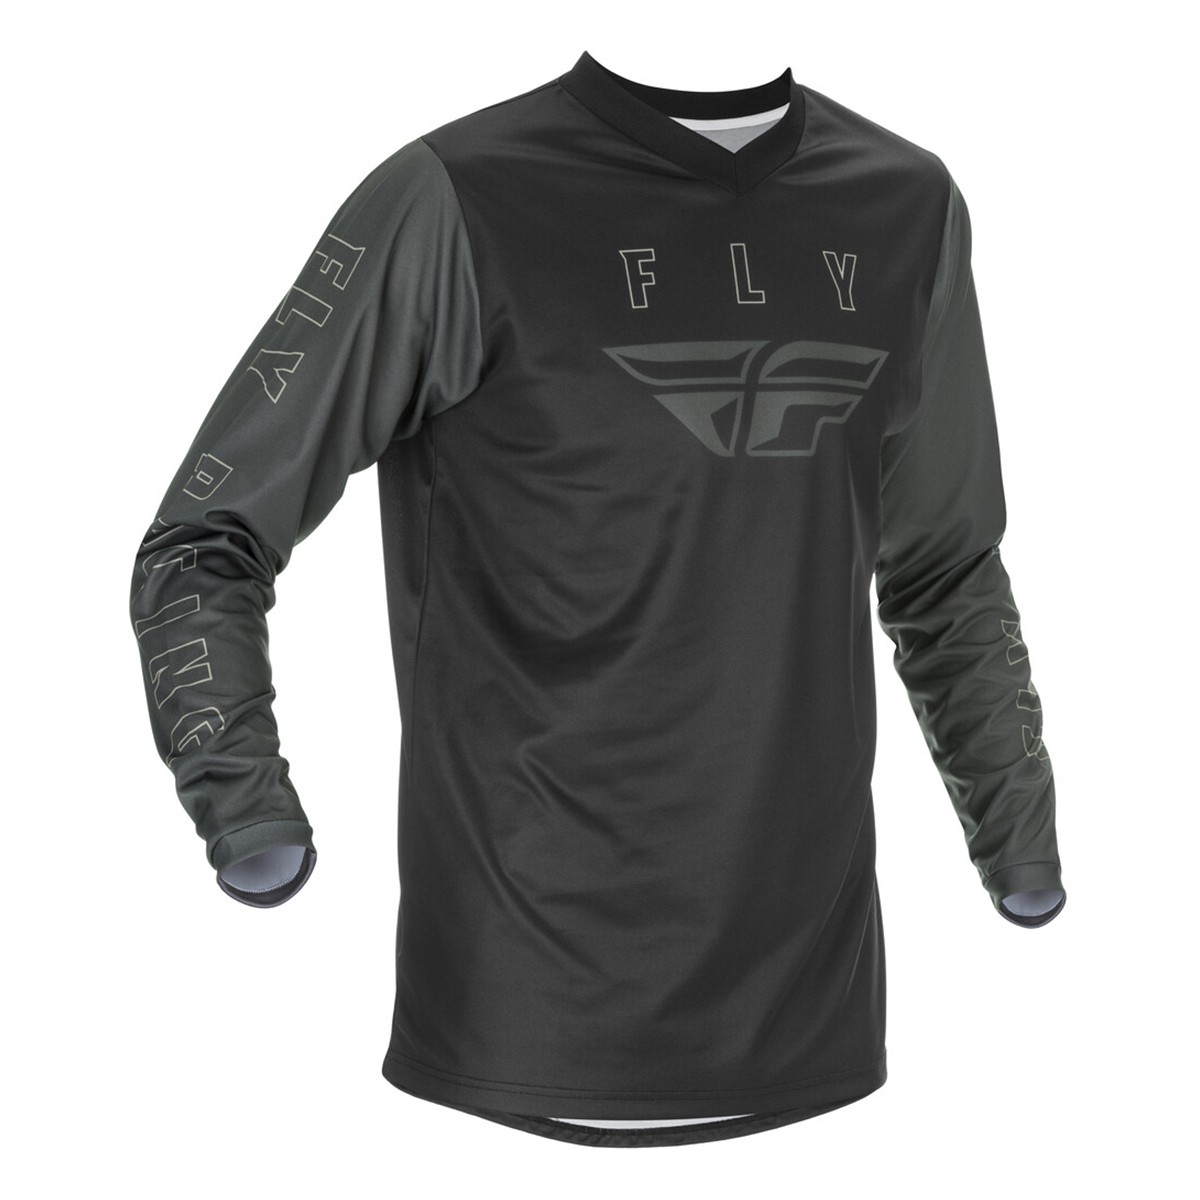 FLY F-16 2021 JERSEY